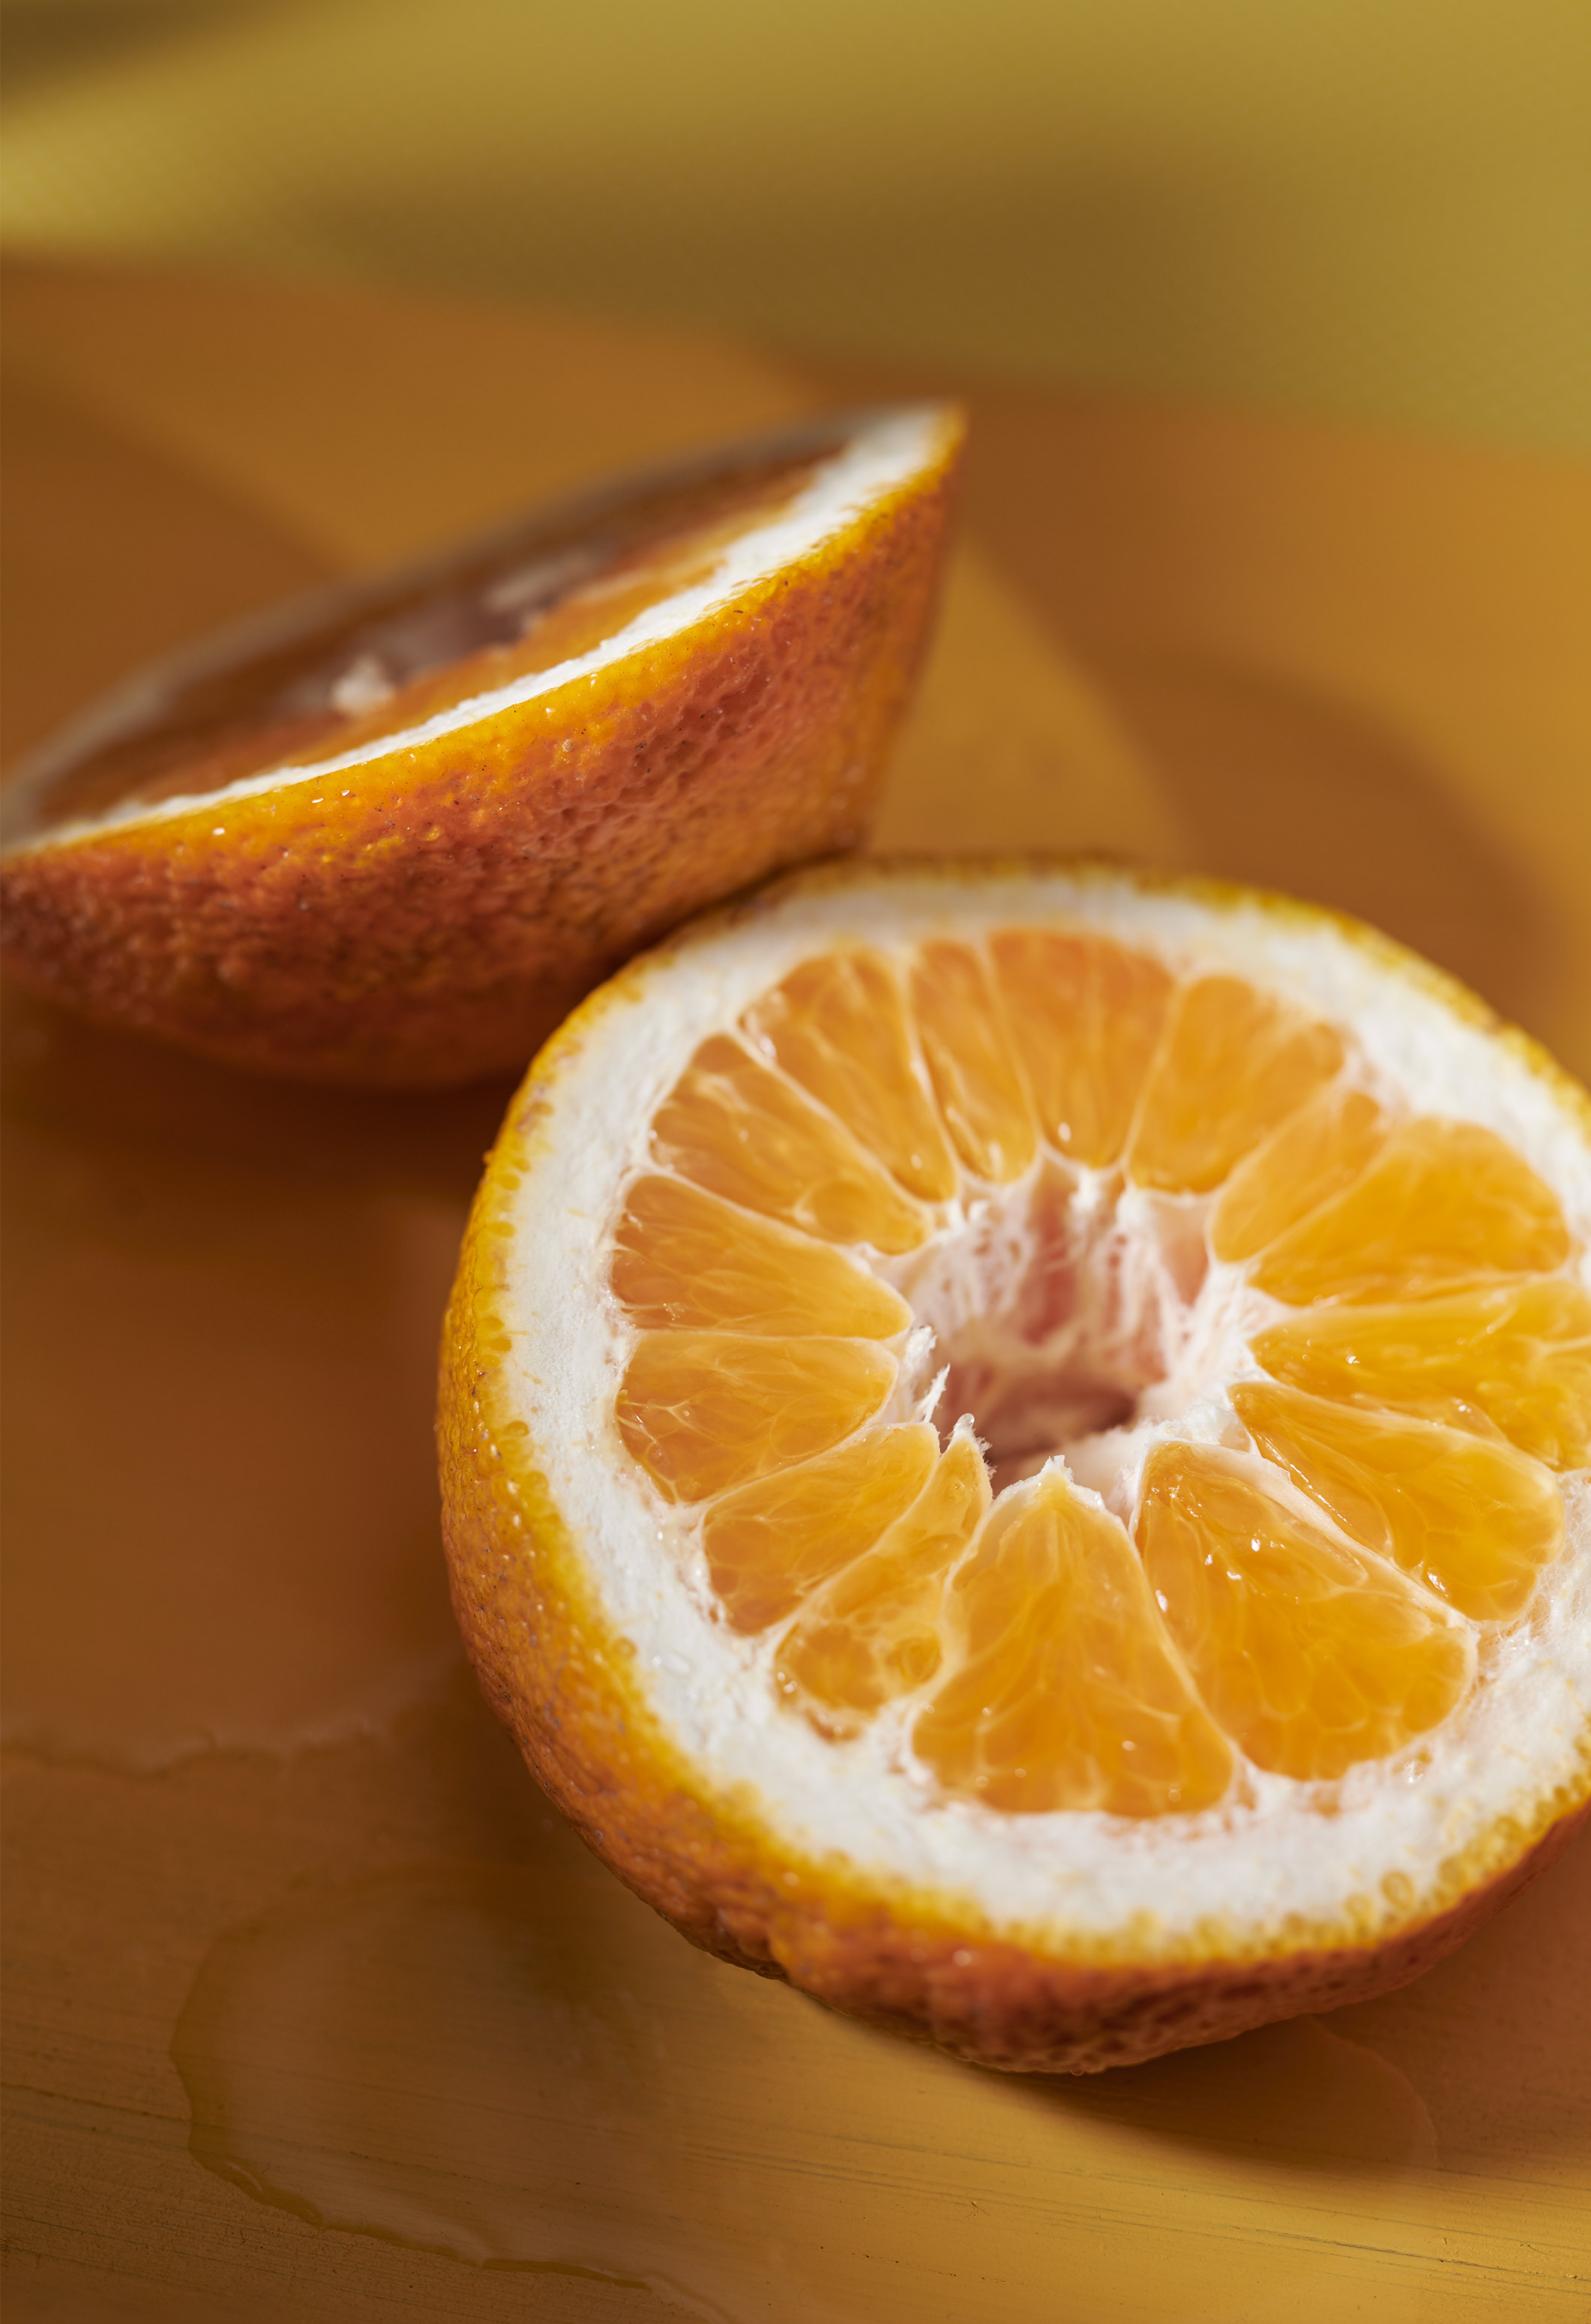 Orange | Steve Hansen food photography Seattle